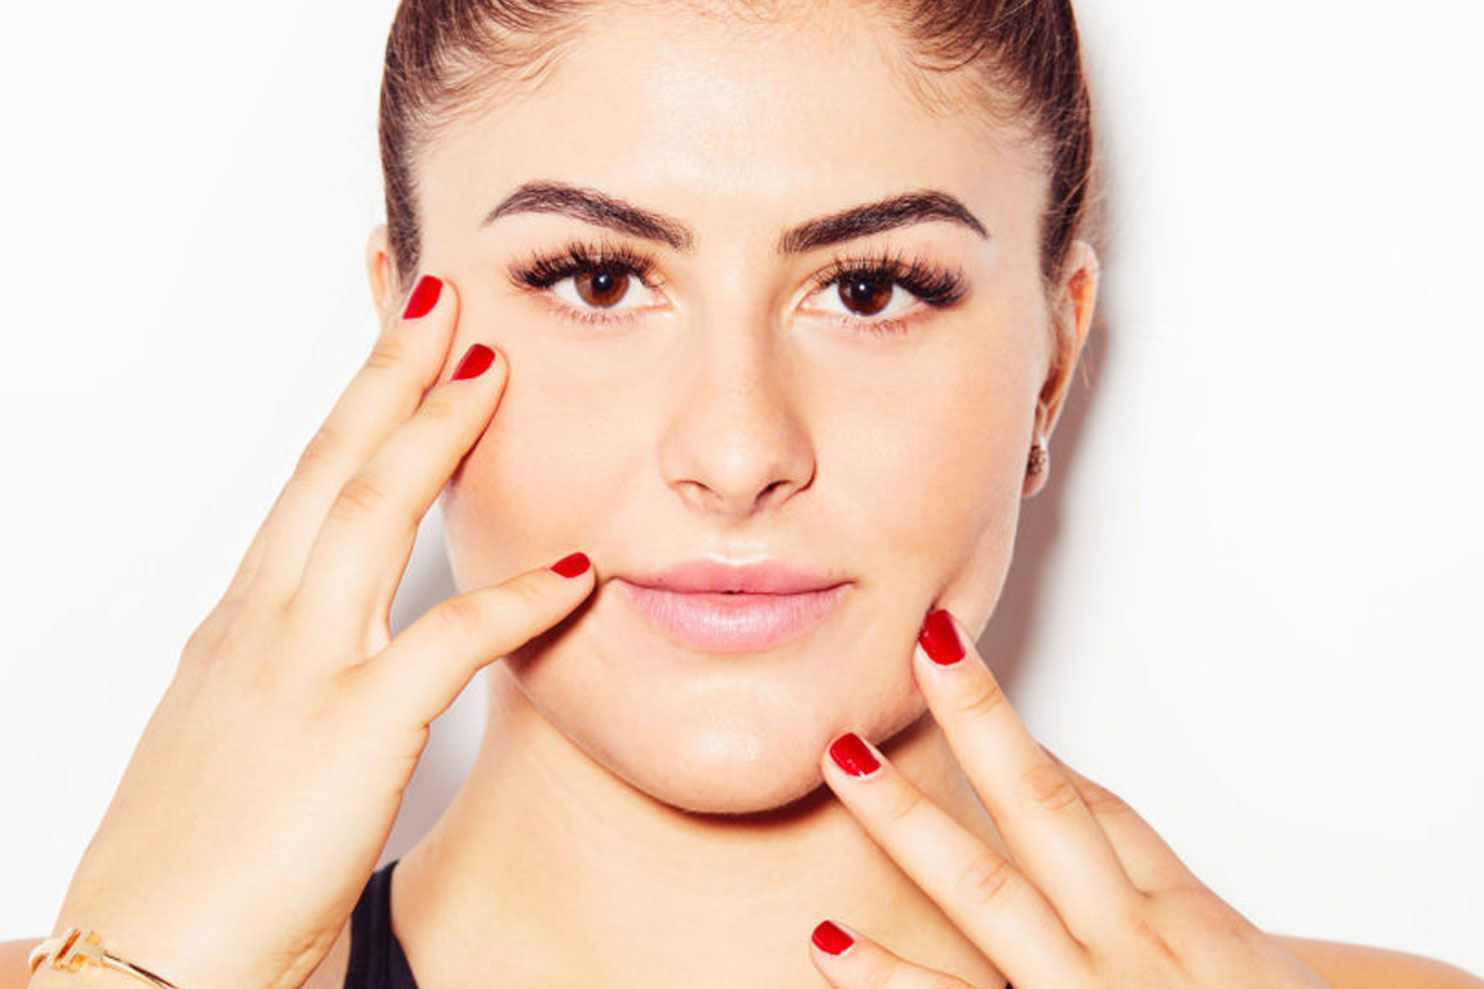 US Open Winner Bianca Andreescu Launches Vegan Beauty Brand with P8NT Nails